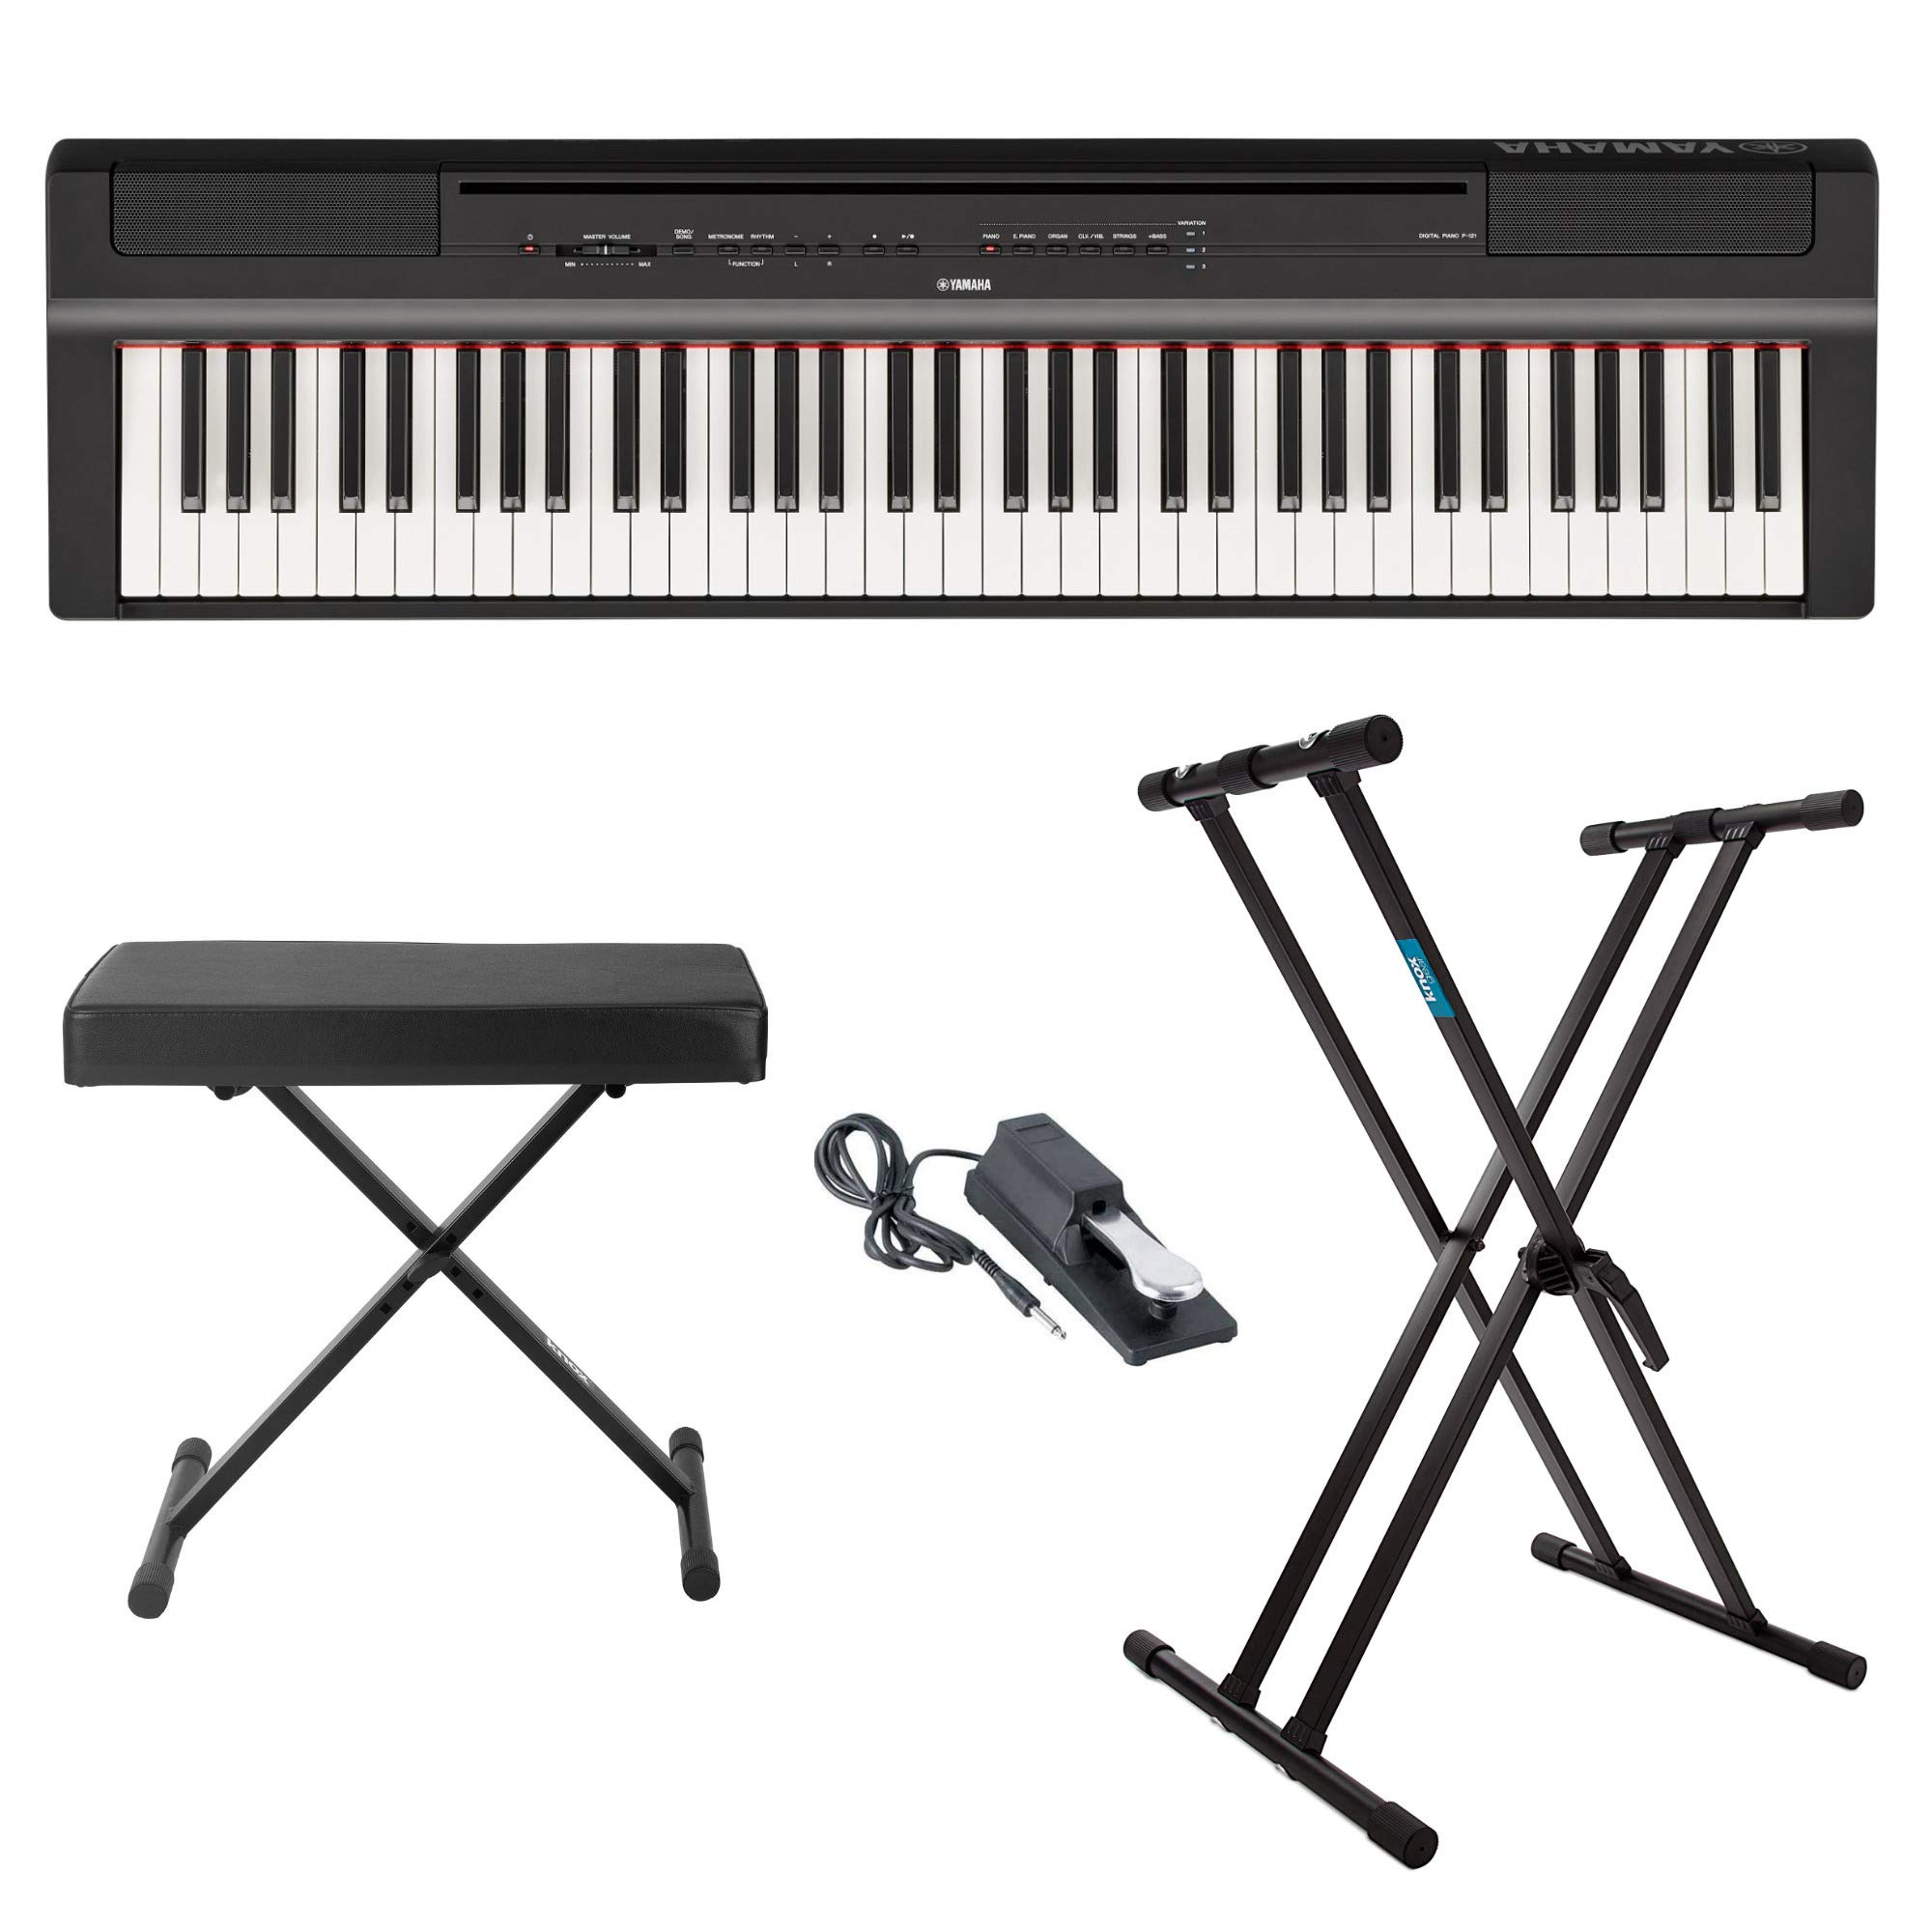 Yamaha P121B 73 Weighted Keys Digital Piano (Black) with Knox Gear Piano Bench, Stand and Sustain Pedal by YAMAHA